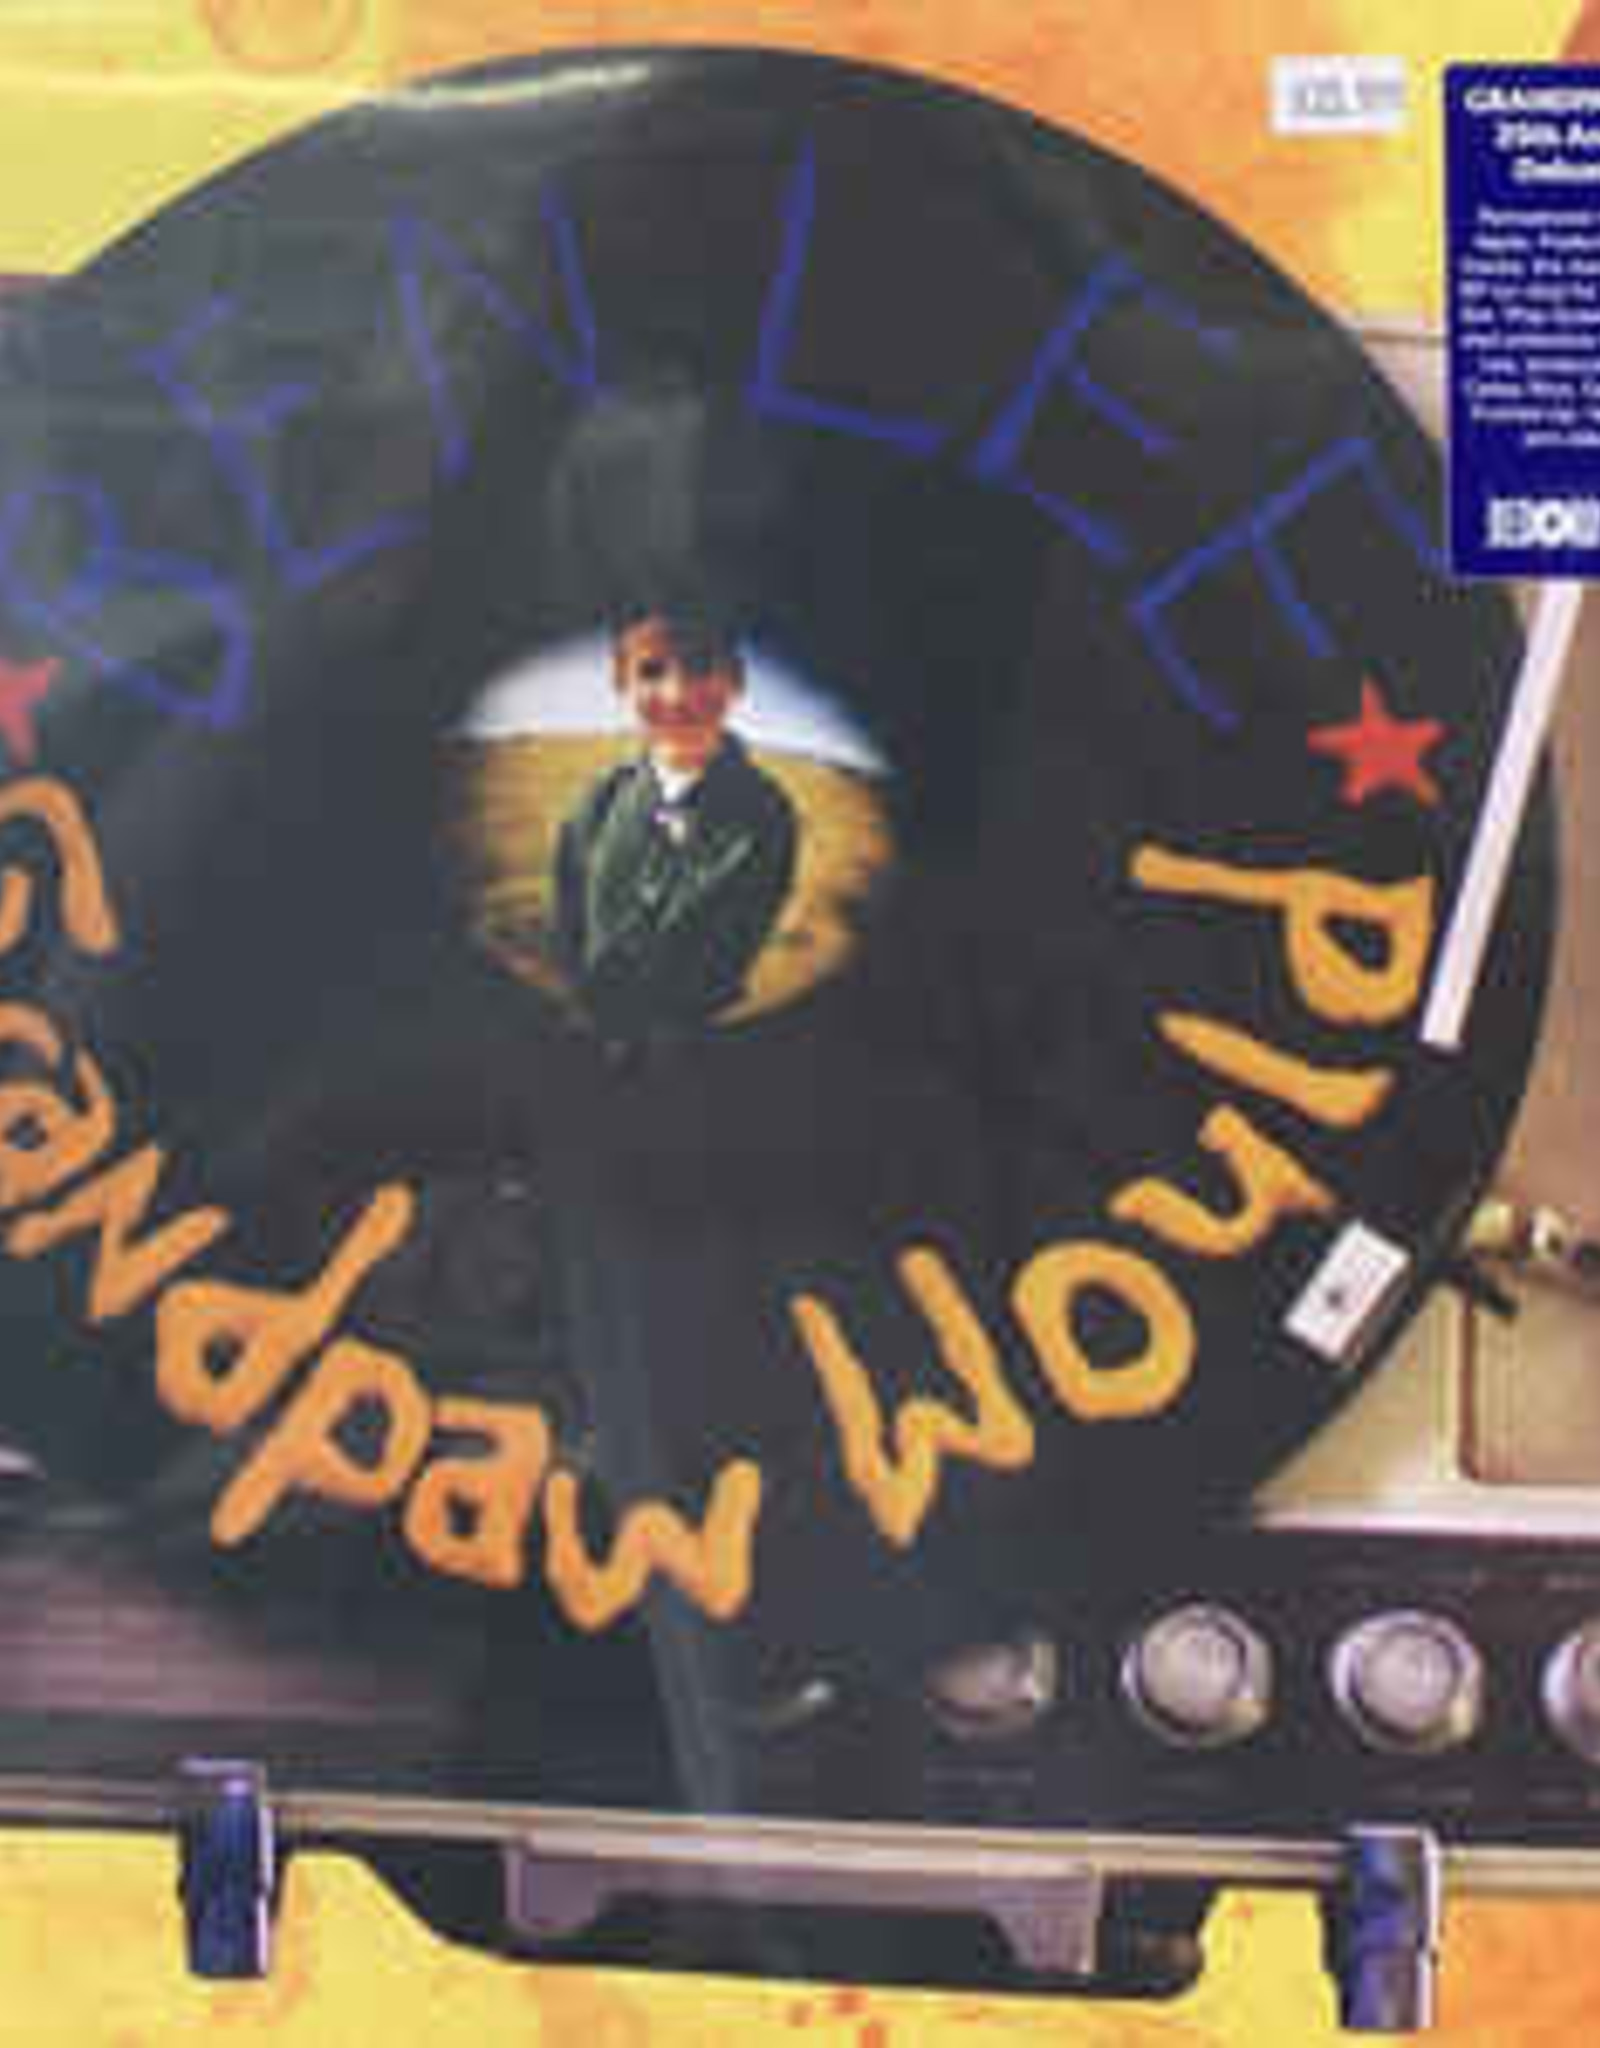 Ben Lee - Grandpaw Would (25Th Anniversary Deluxe Edition) (Birthday Cake Vinyl) (RSD 2020)